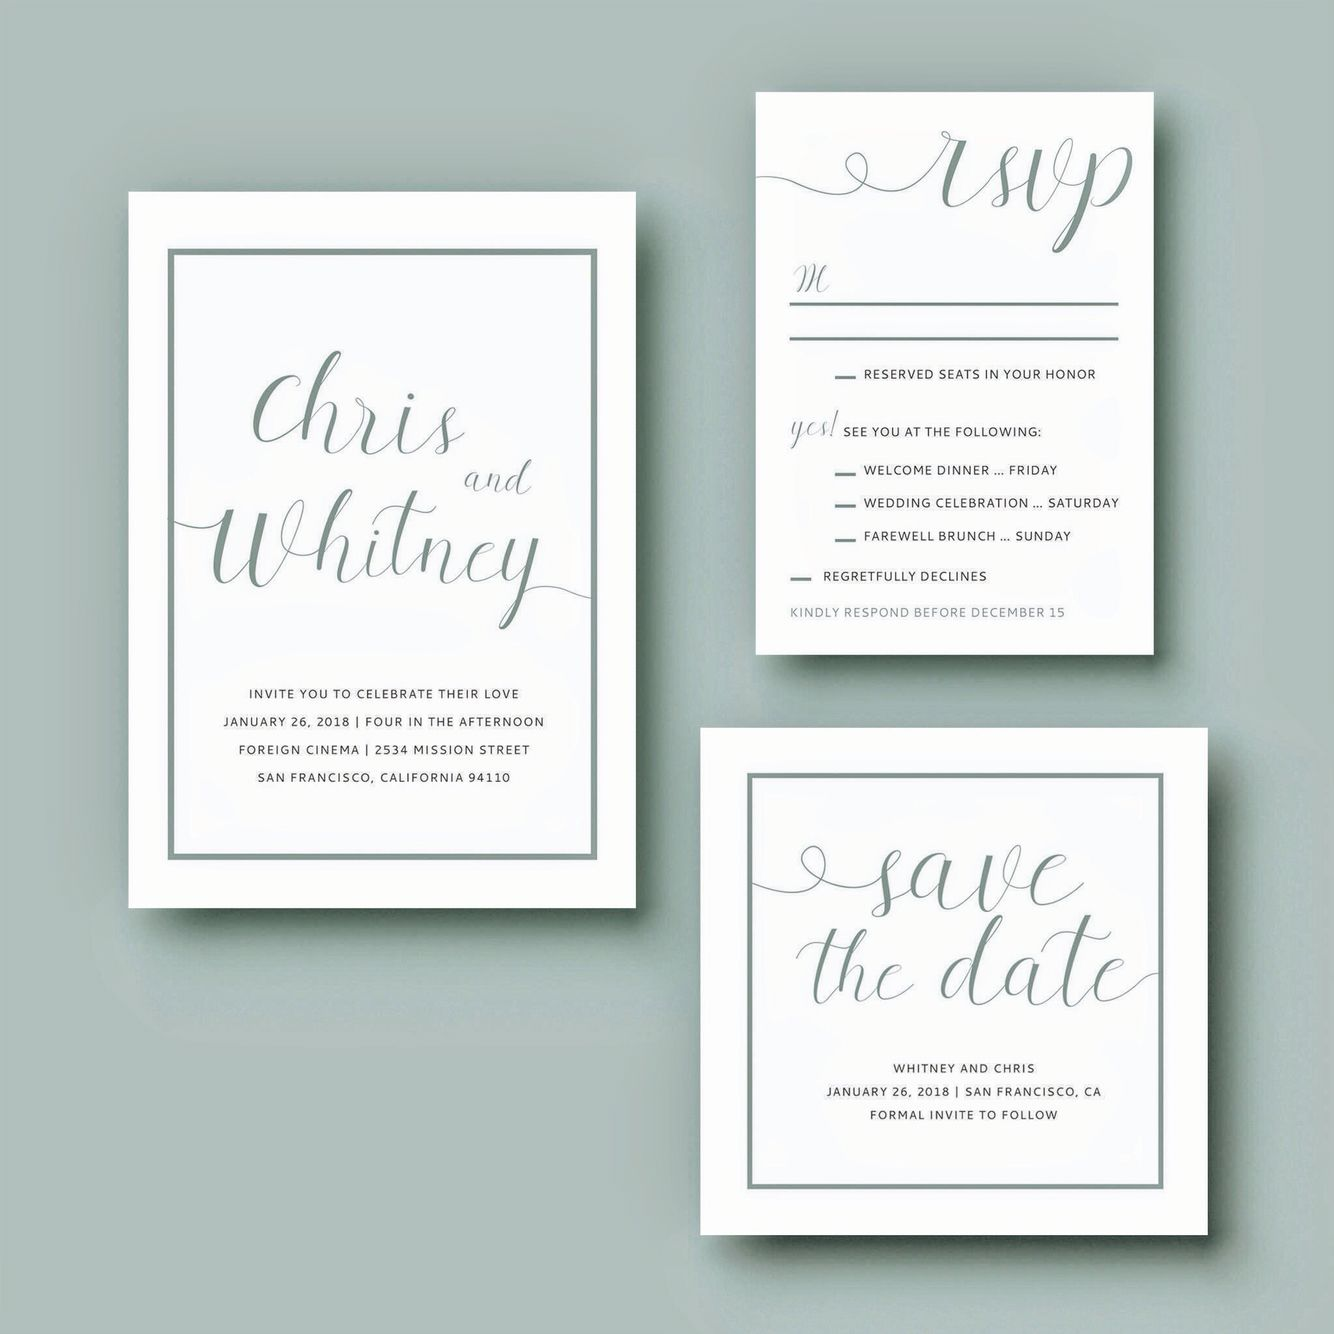 Mint Wedding Invitation Suite: Invitation + Save the Date + Weekend ...